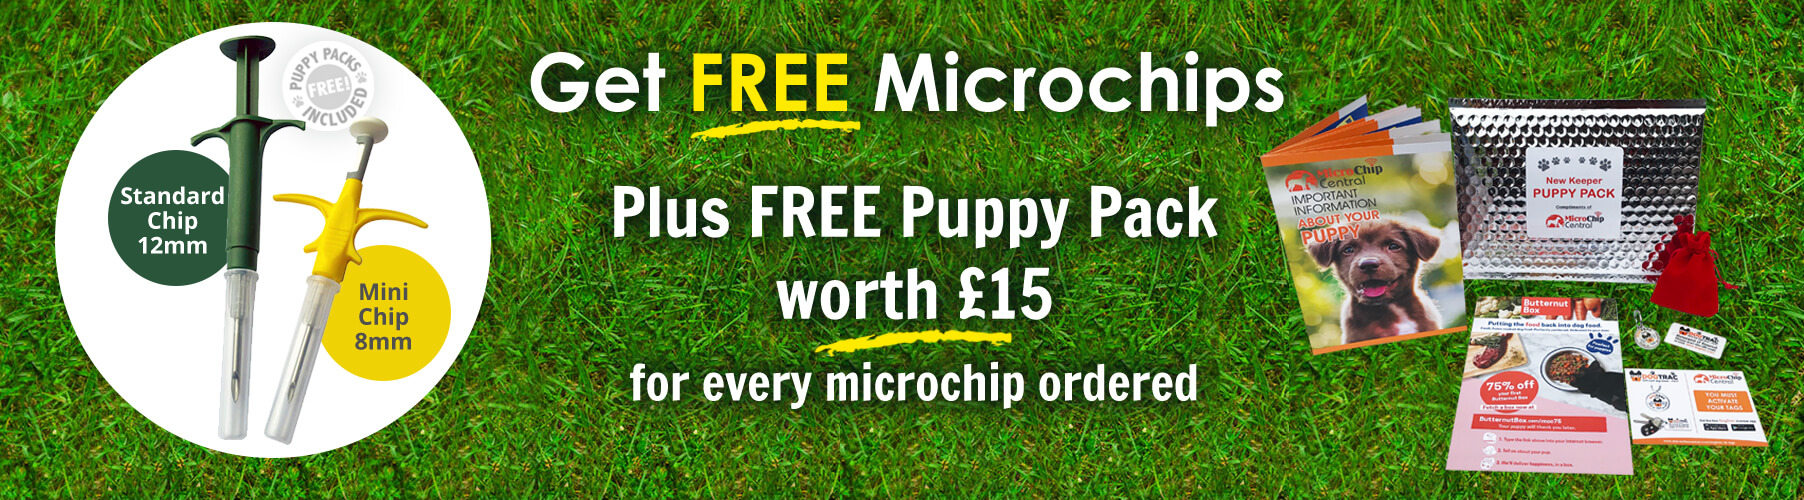 Buy Pet Microchips